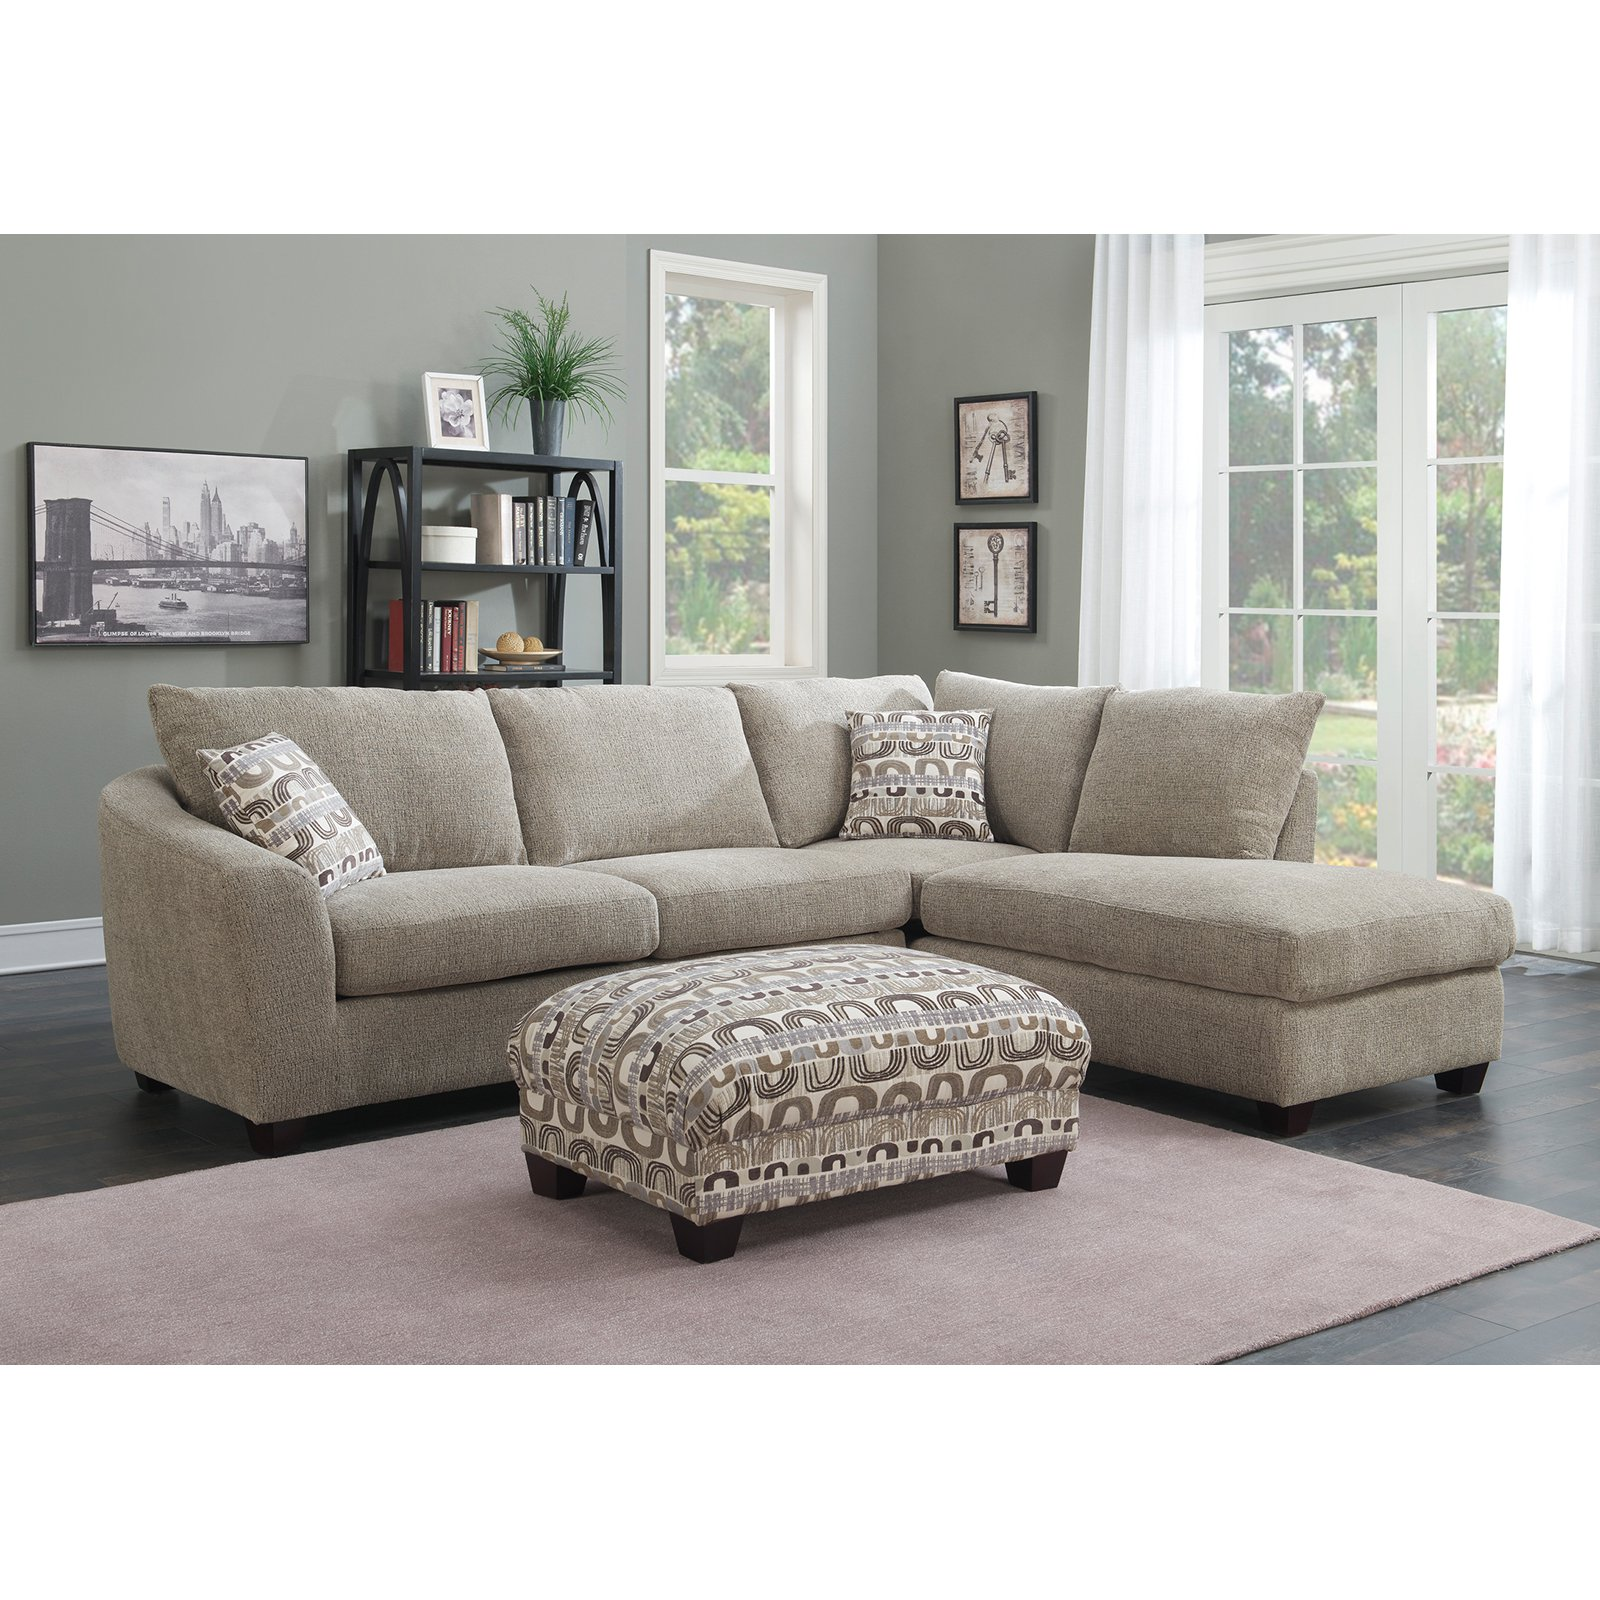 Emerald Home Urbana 2 Piece Sectional Sofa with Chaise - Walmart